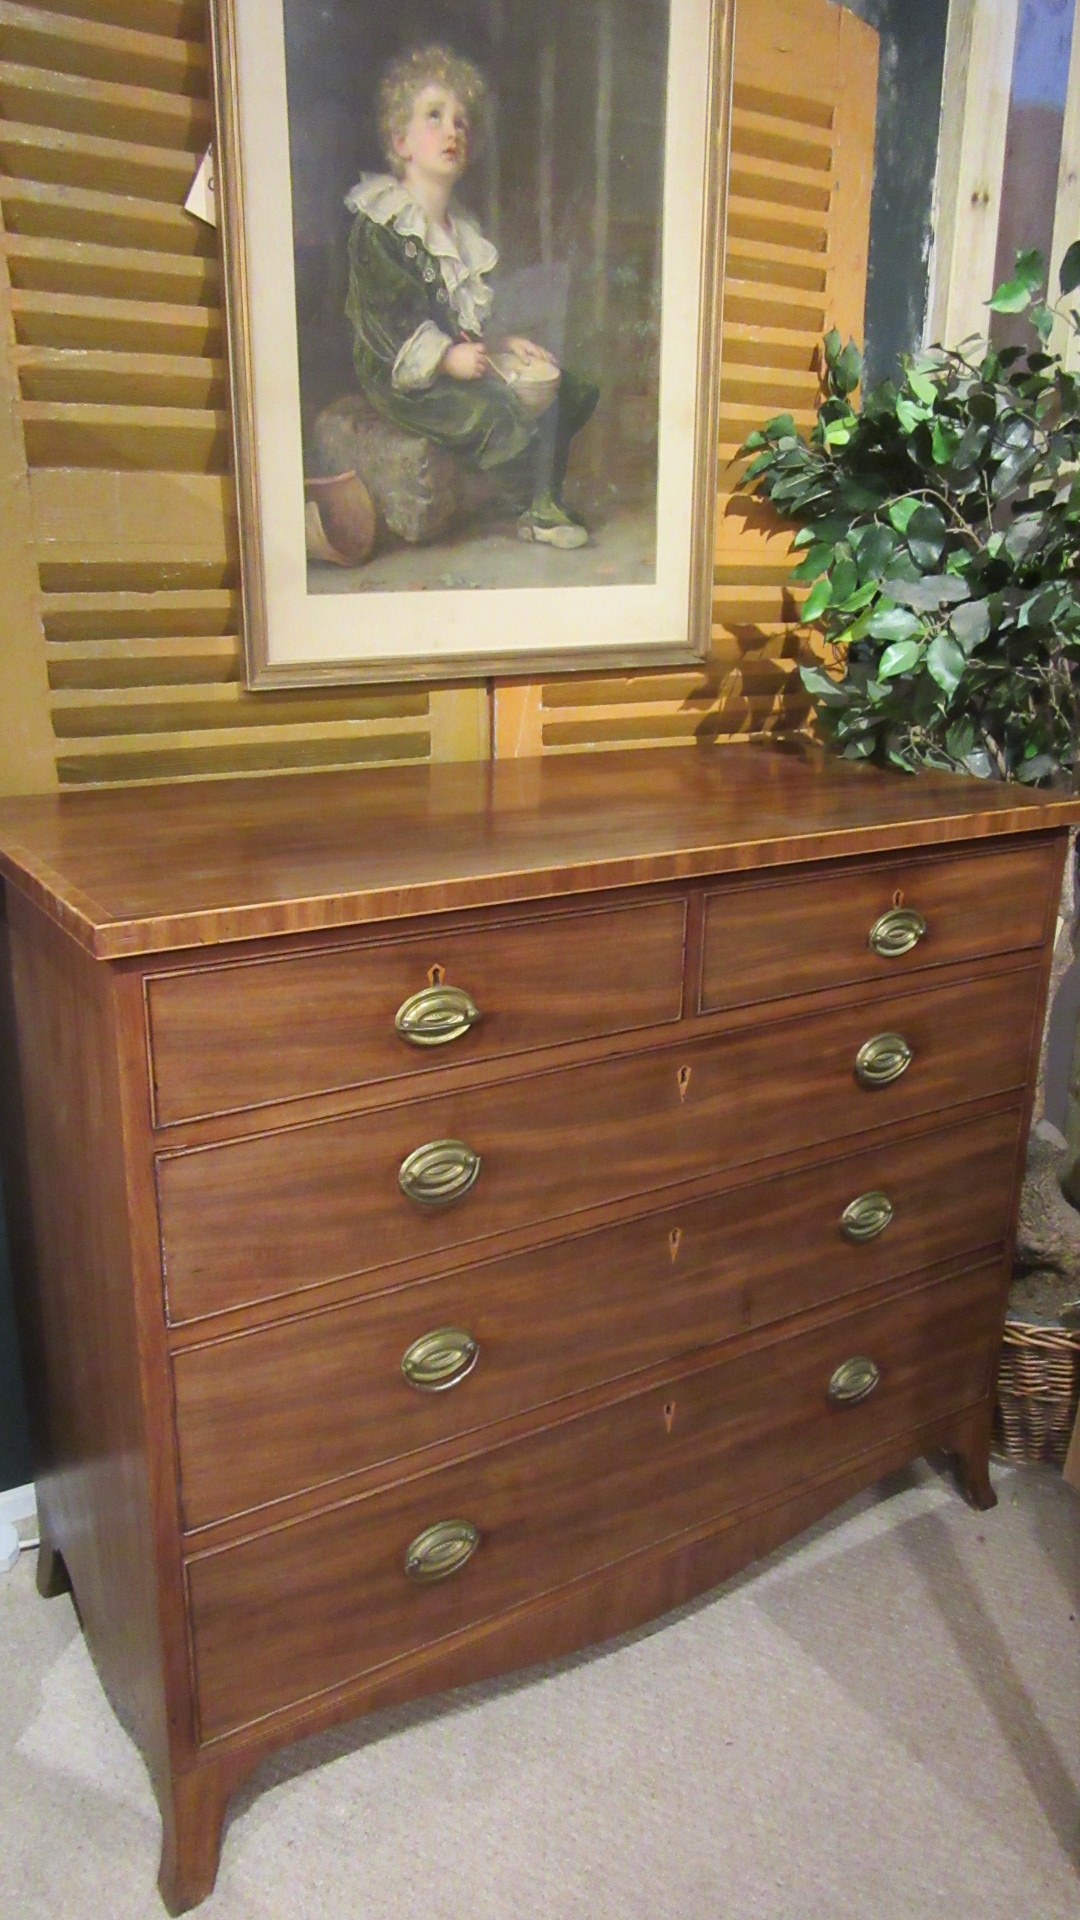 ANTIQUE REGENCY INLAID MAHOGANY CHEST OF DRAWERS